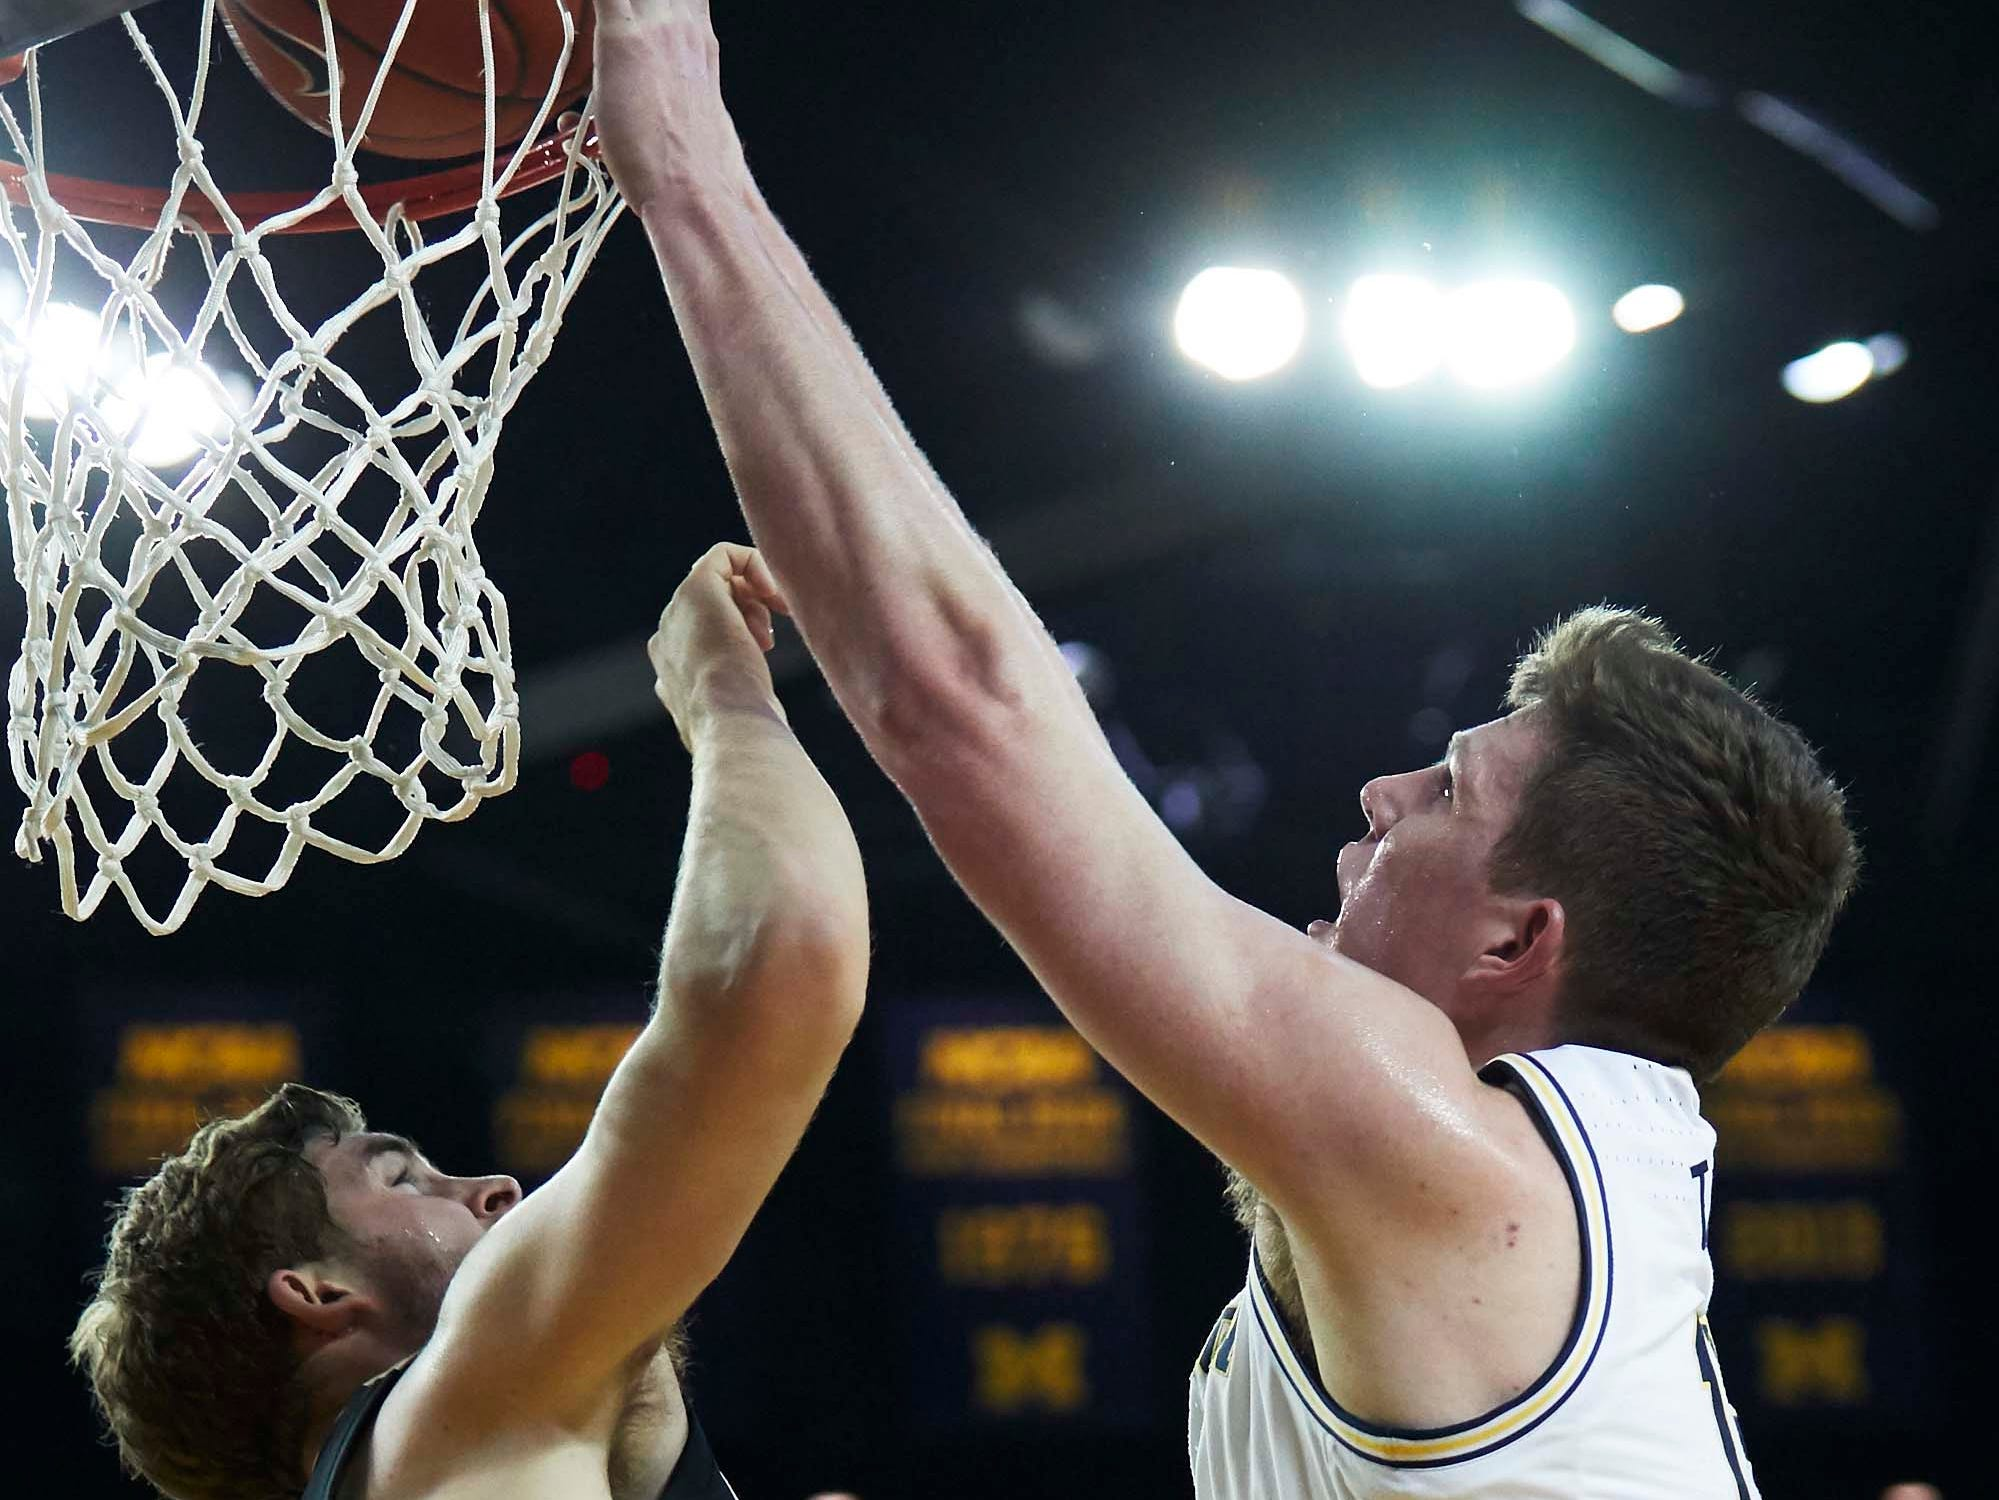 Dec 1, 2018; Ann Arbor, MI, USA; Michigan Wolverines center Jon Teske (15) shoots on Purdue Boilermakers guard Ryan Cline (14) in the first half at Crisler Center. Mandatory Credit: Rick Osentoski-USA TODAY Sports